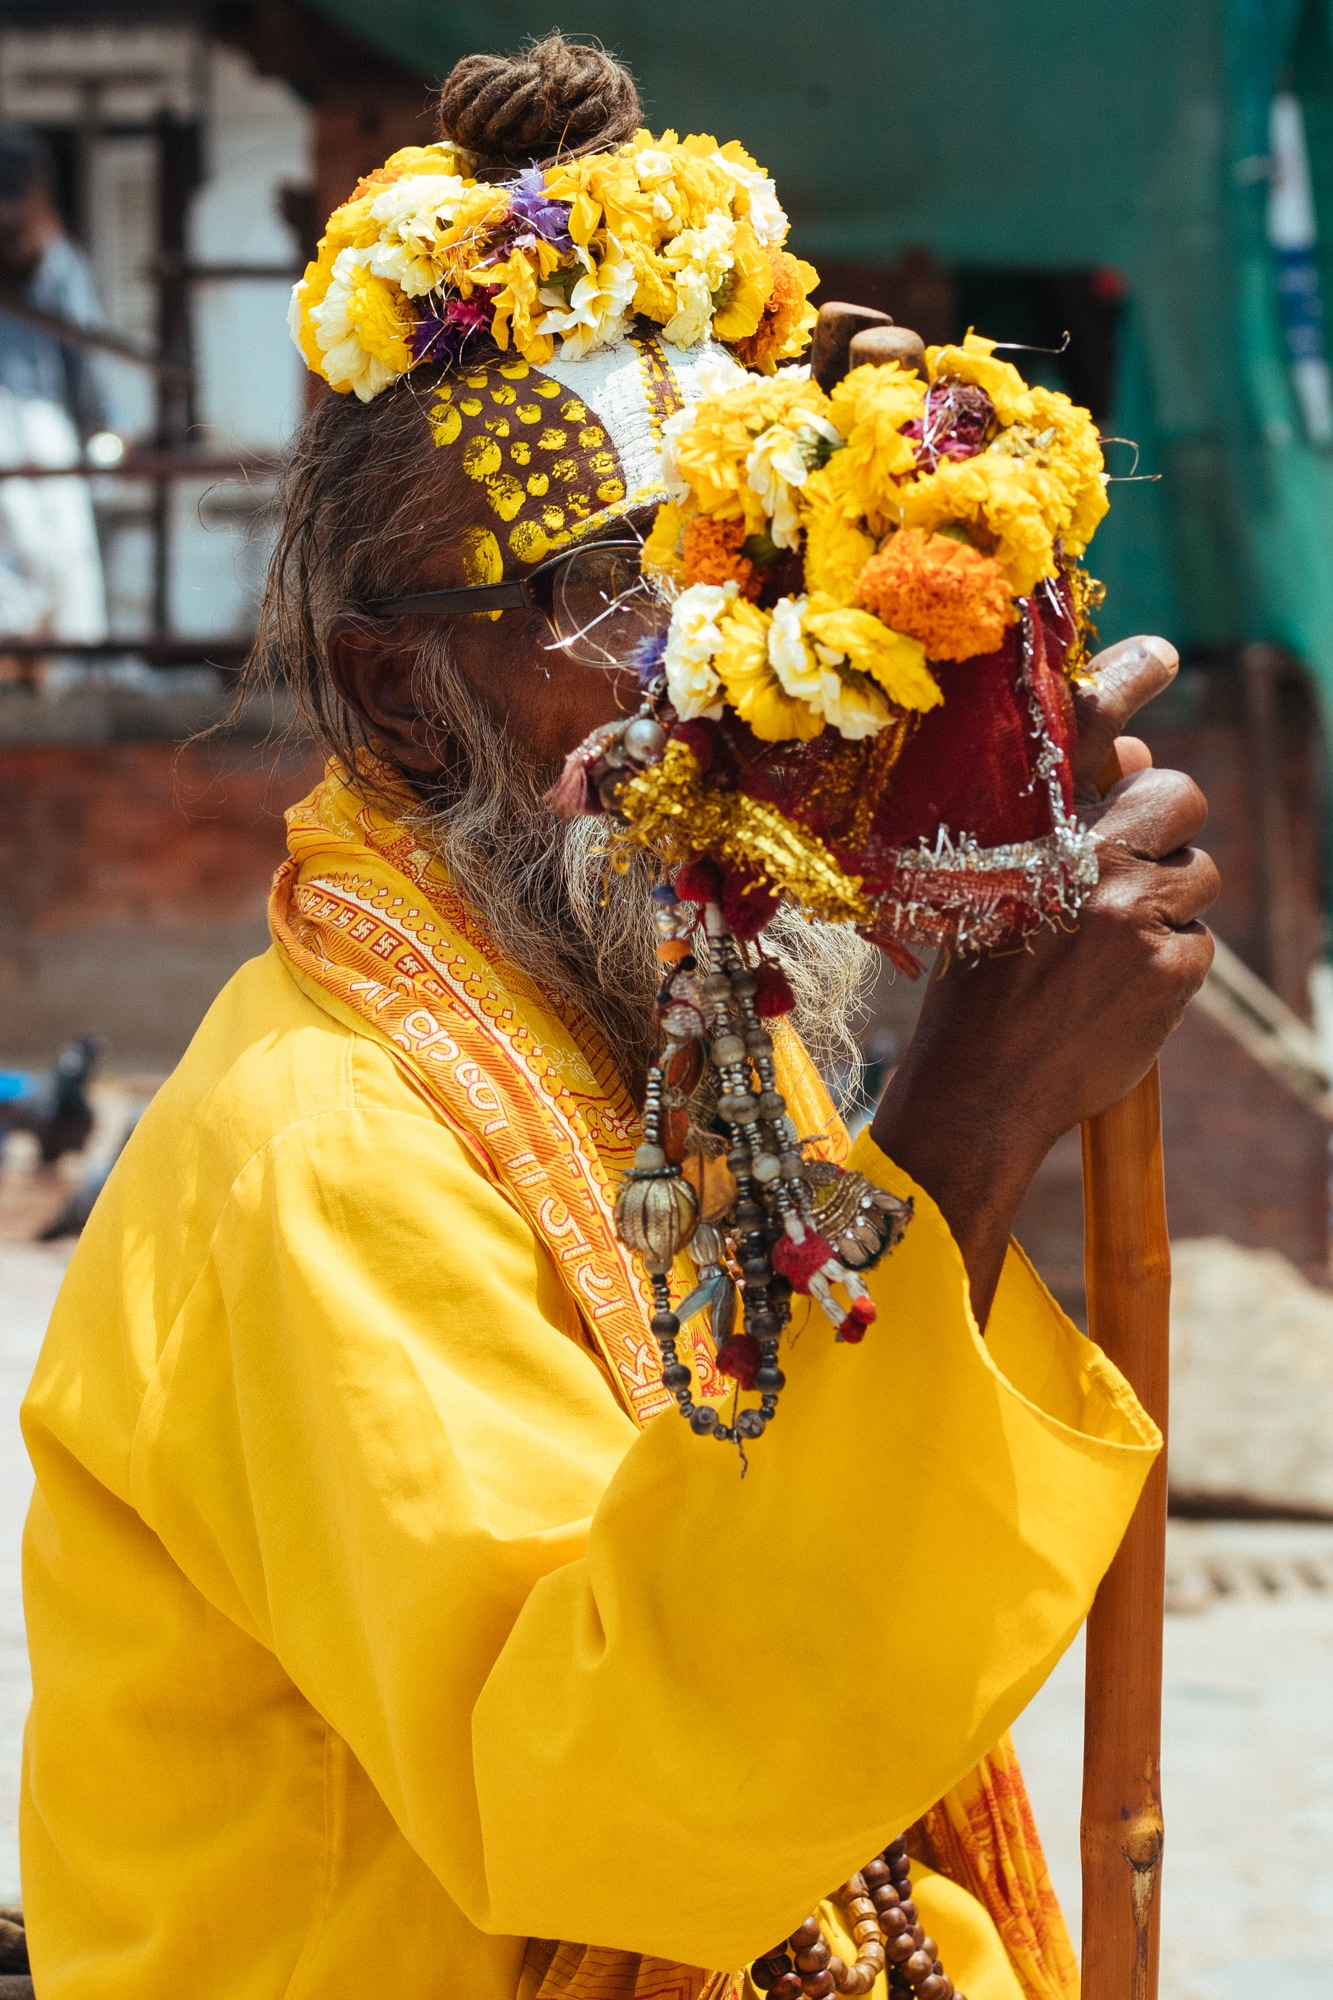 A sadhu in yellow looks at the camera